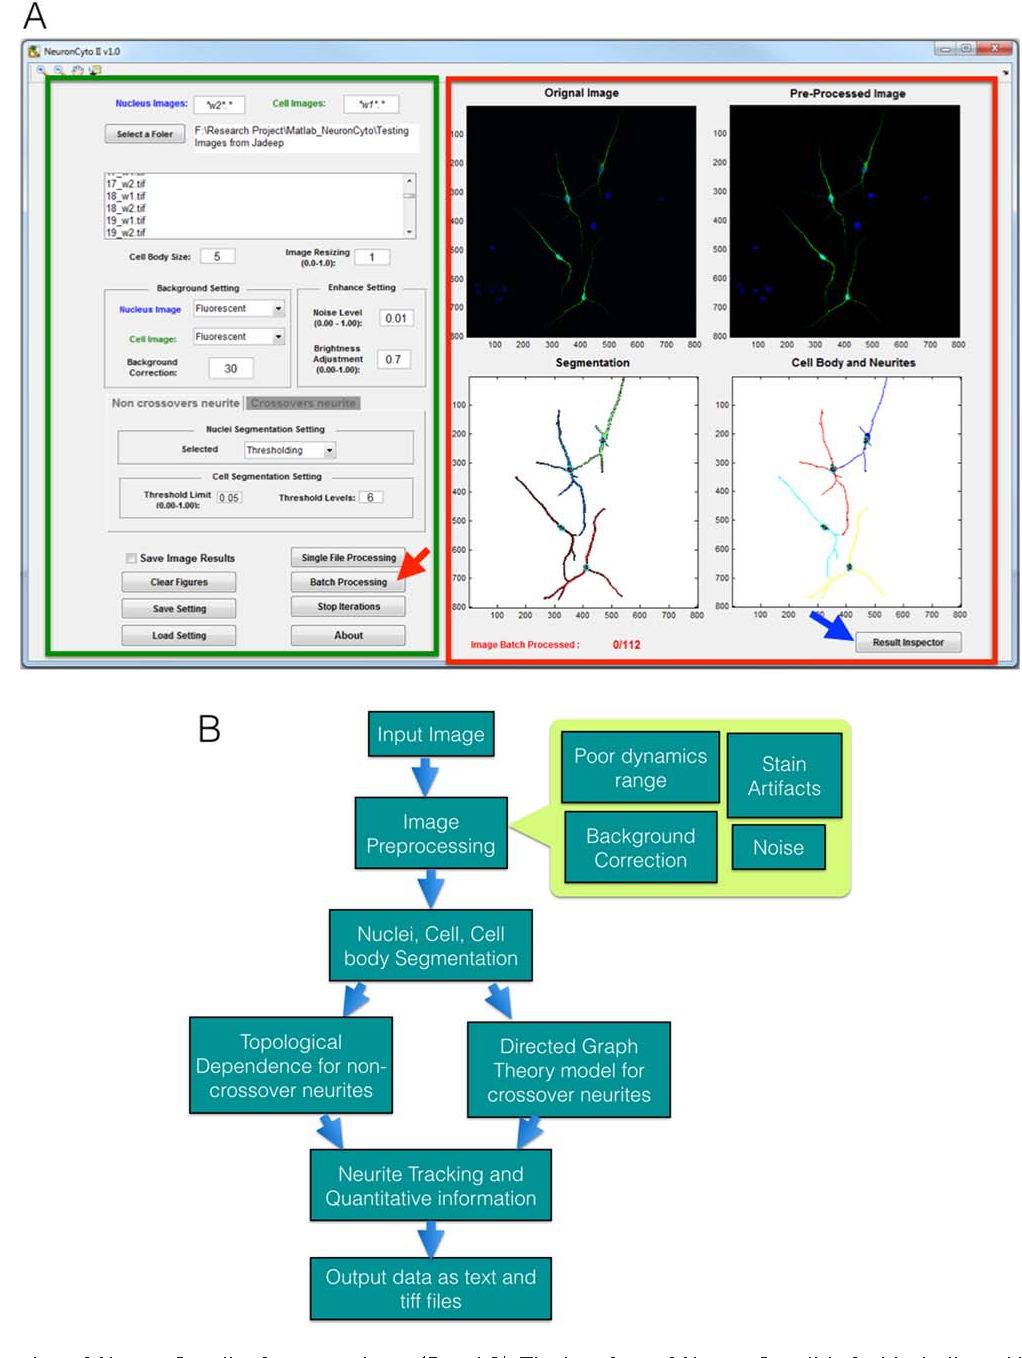 NeuronCyto II: An automatic and quantitative solution for